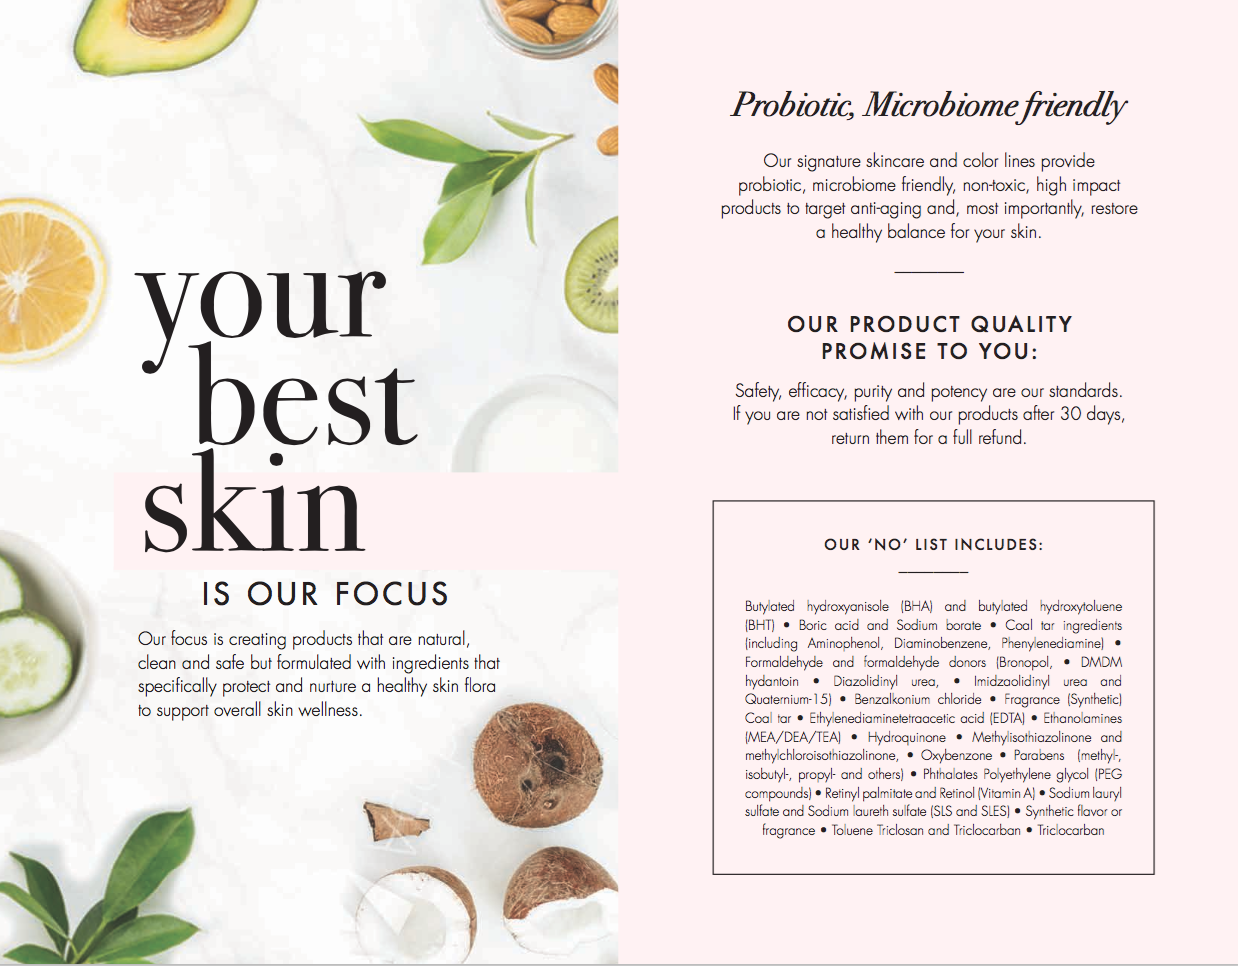 Product Positioning and Tools - We positioned and branded the product to elevate the health, purity and efficacy of the products through relevant messaging and visual cues. We executed this both digitally, in print and through packaging and training.